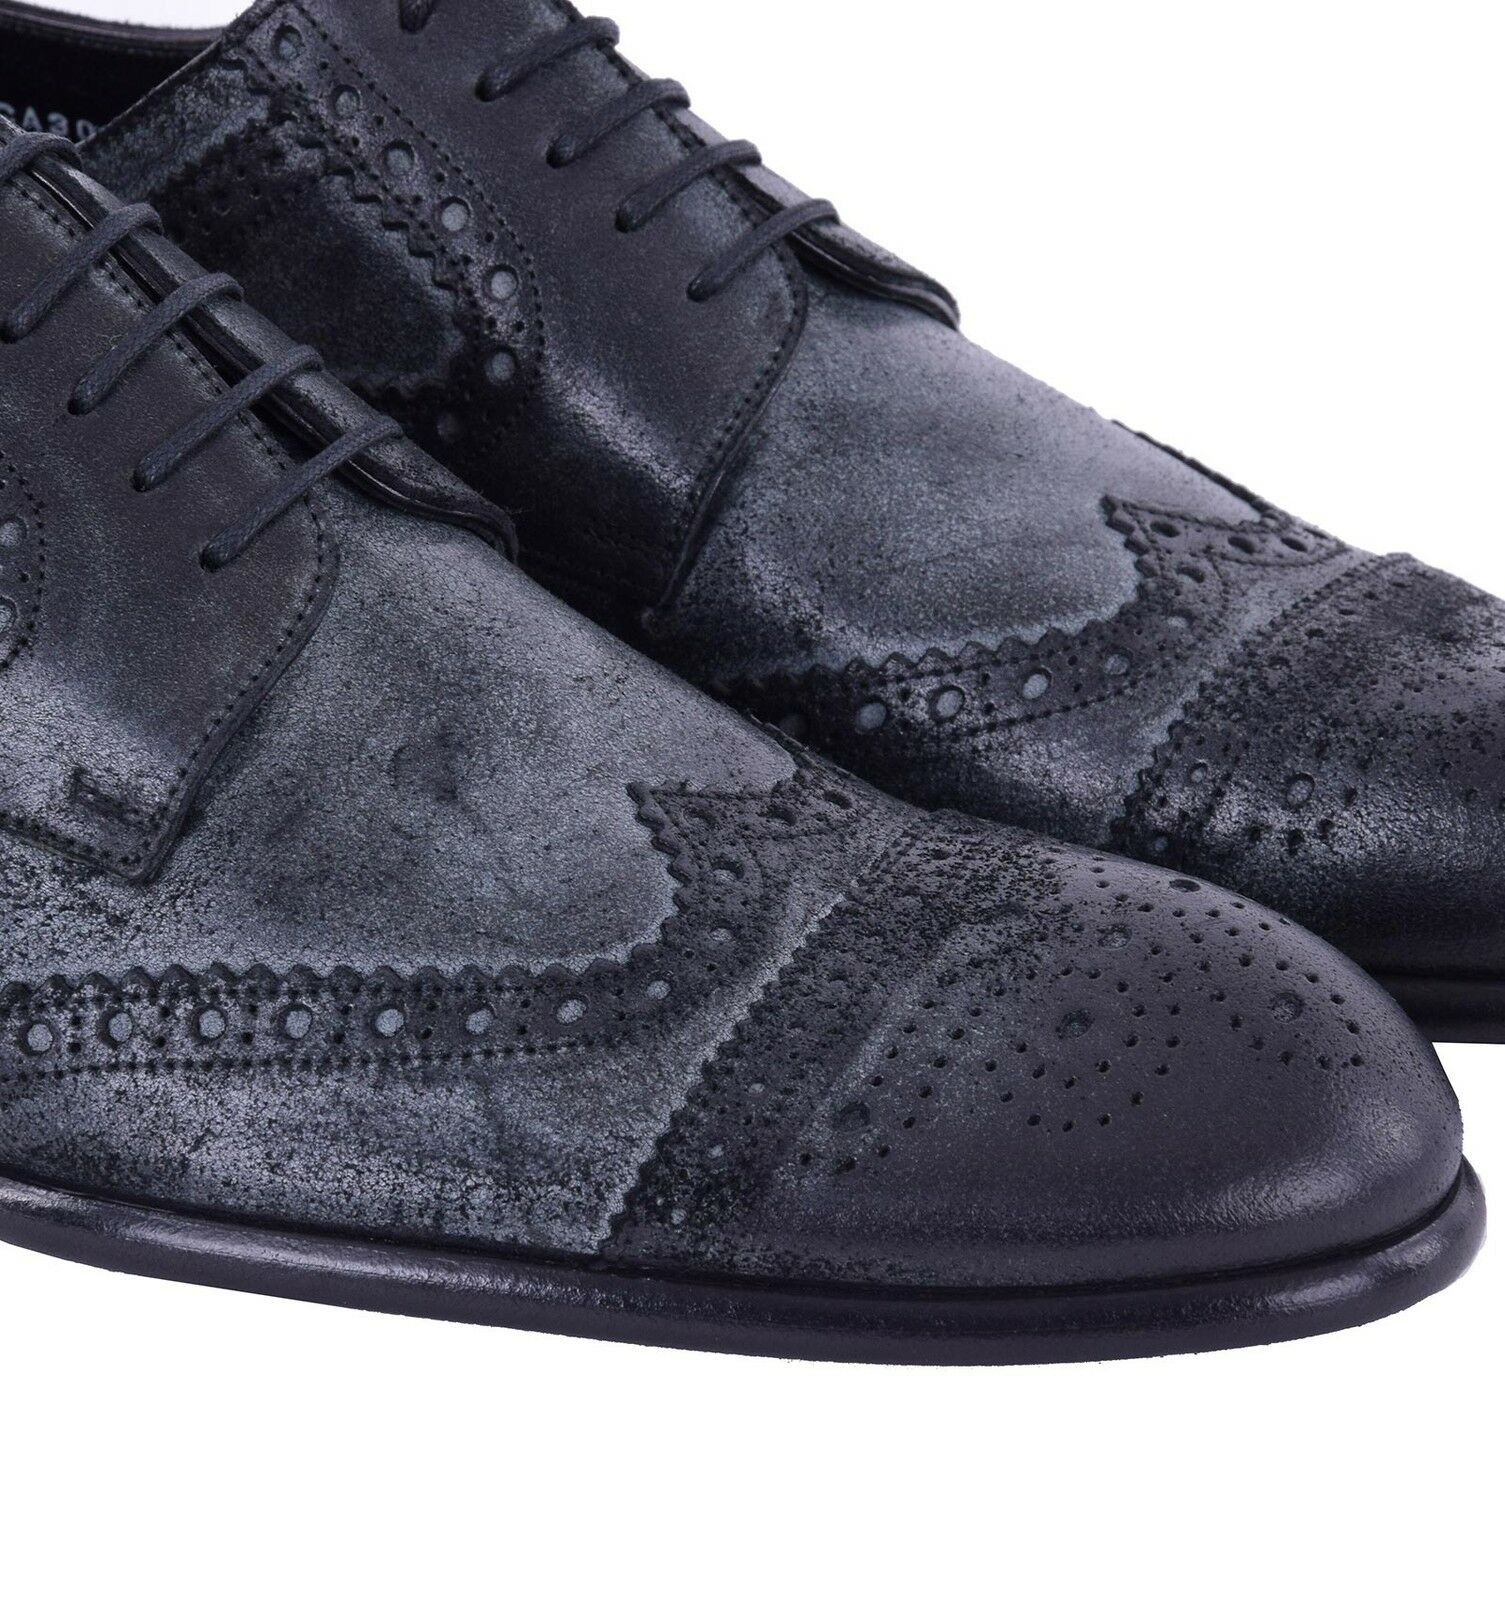 DOLCE & GABBANA Wildleder Business Schuhes Derby Schuhe Schwarz Formal Schuhes Business 05065 d1aa11